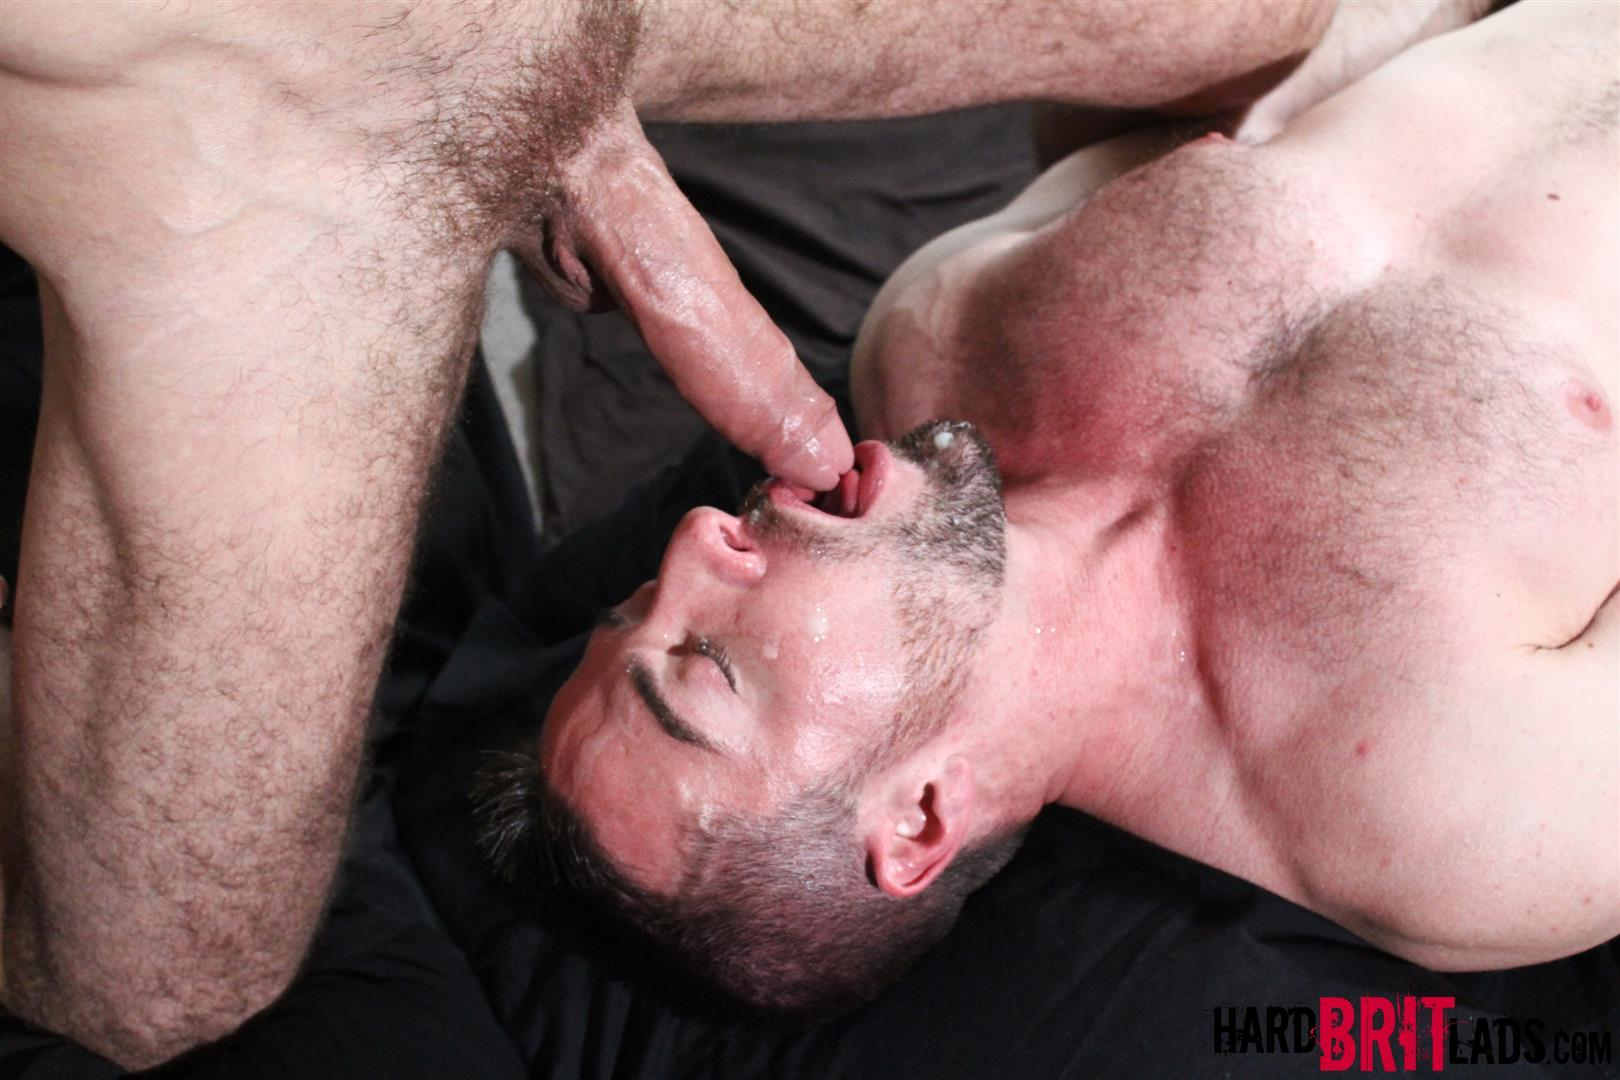 Hard Brit Lads Craig Daniel Scott Hunter Hairy Muscle Hunks With Big Uncut Cocks Fucking Amateur Gay Porn 21